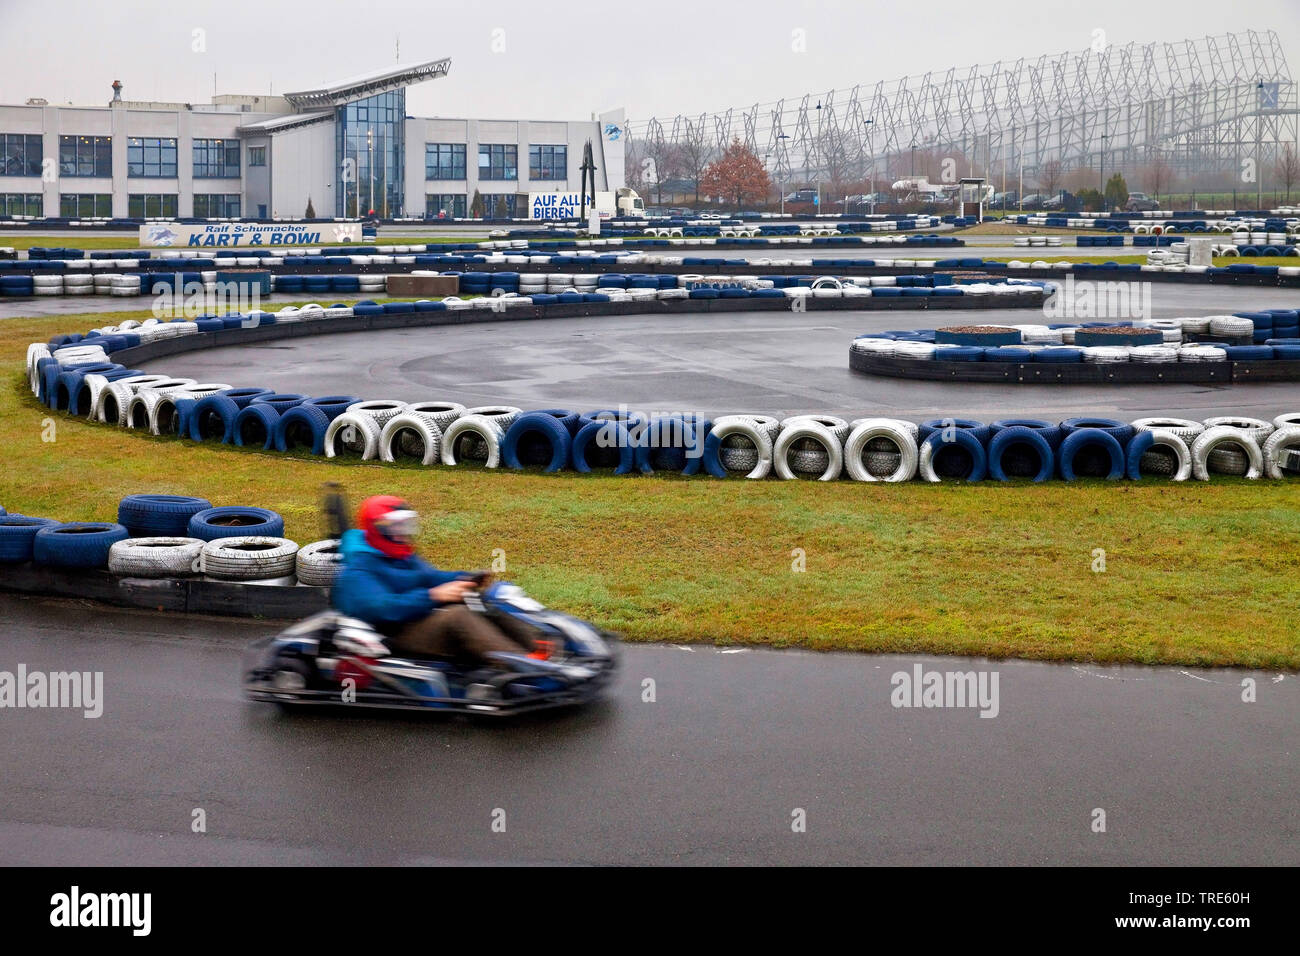 Kart Track Stock Photos & Kart Track Stock Images - Alamy